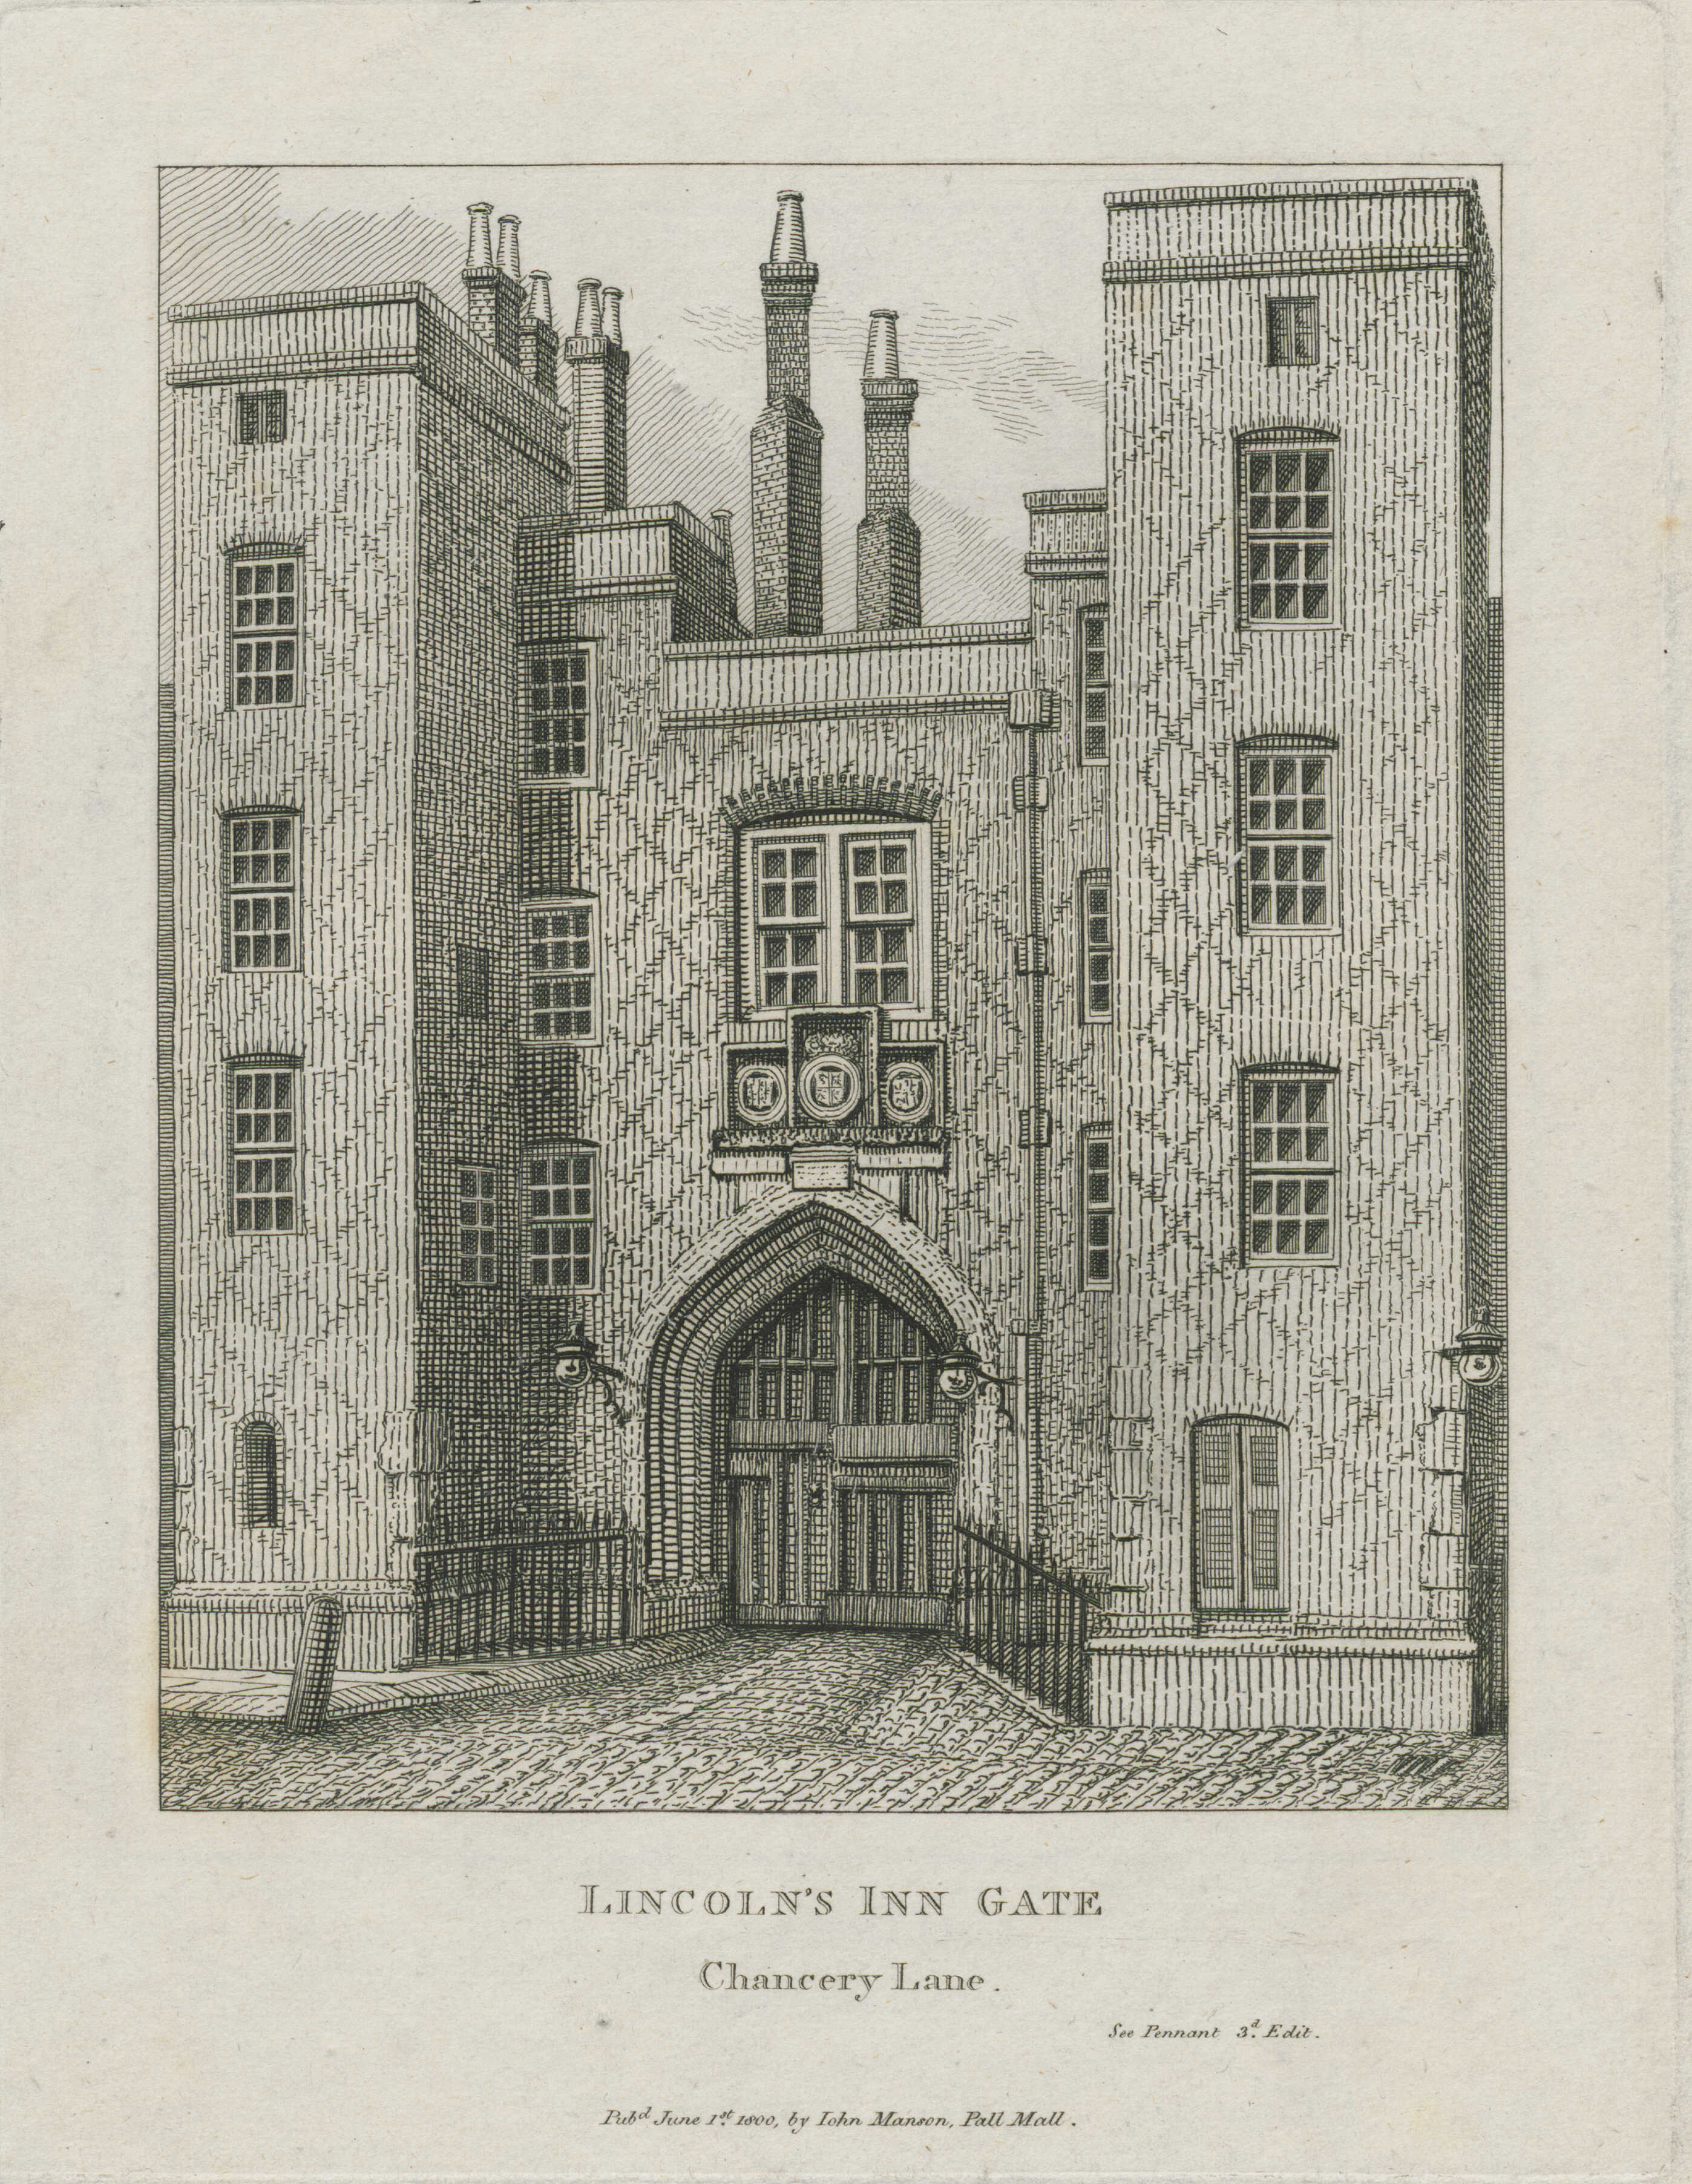 78-lincolns-inn-gate-chancery-lane